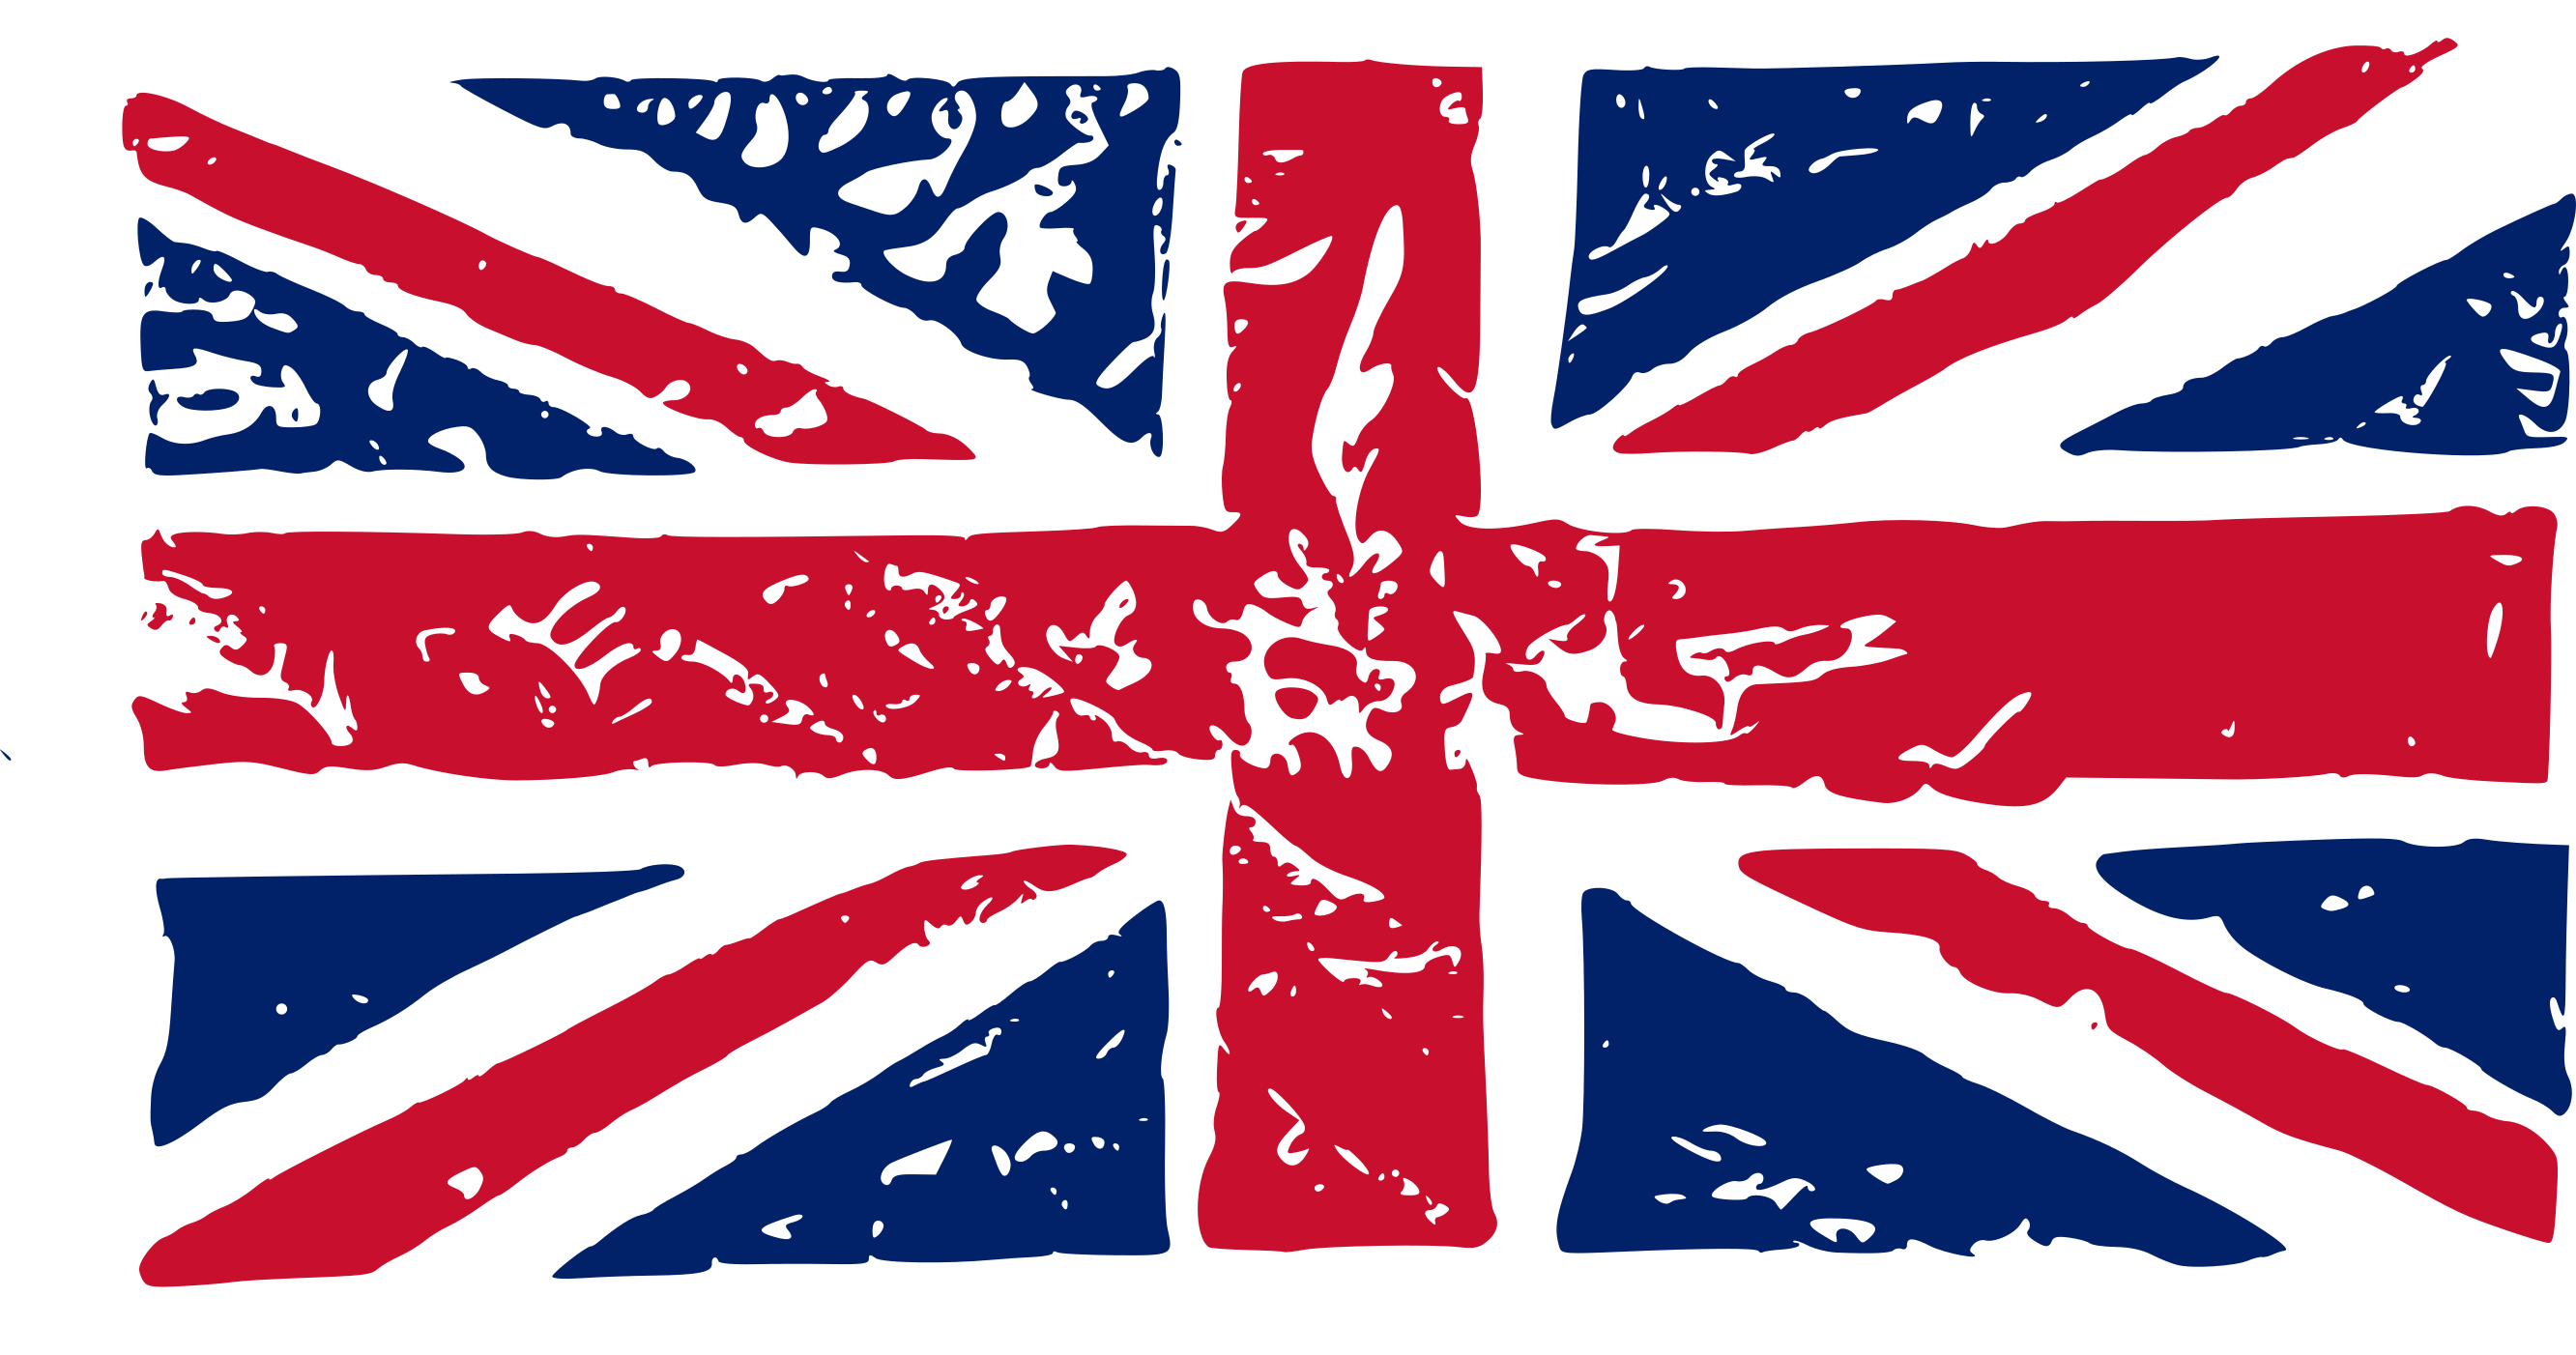 grunge-britain-uk-flag-2.png